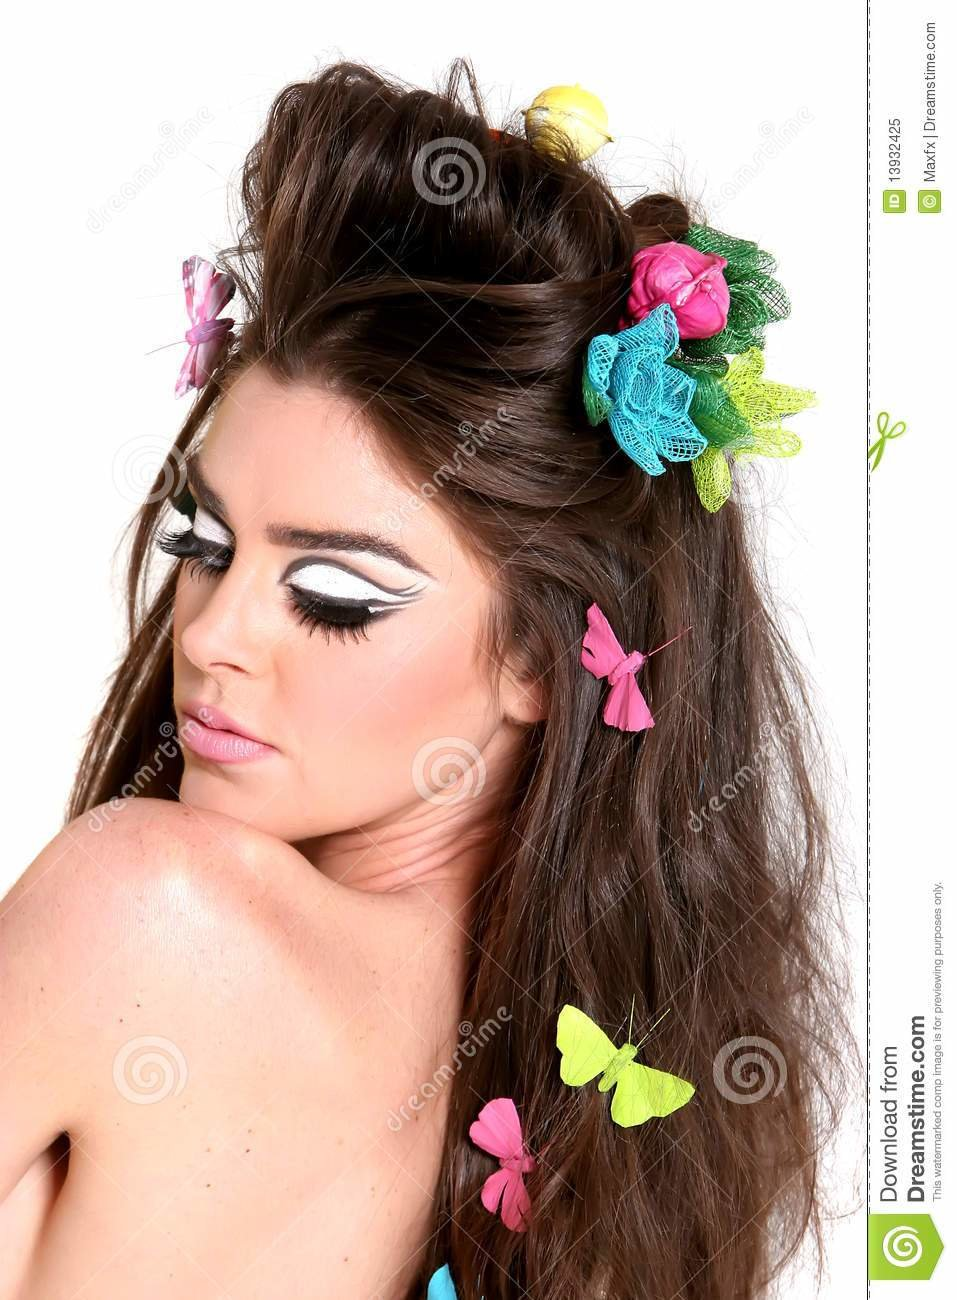 The Best Young Woman With High Fashion Makeup And Hairstyle Stock Pictures